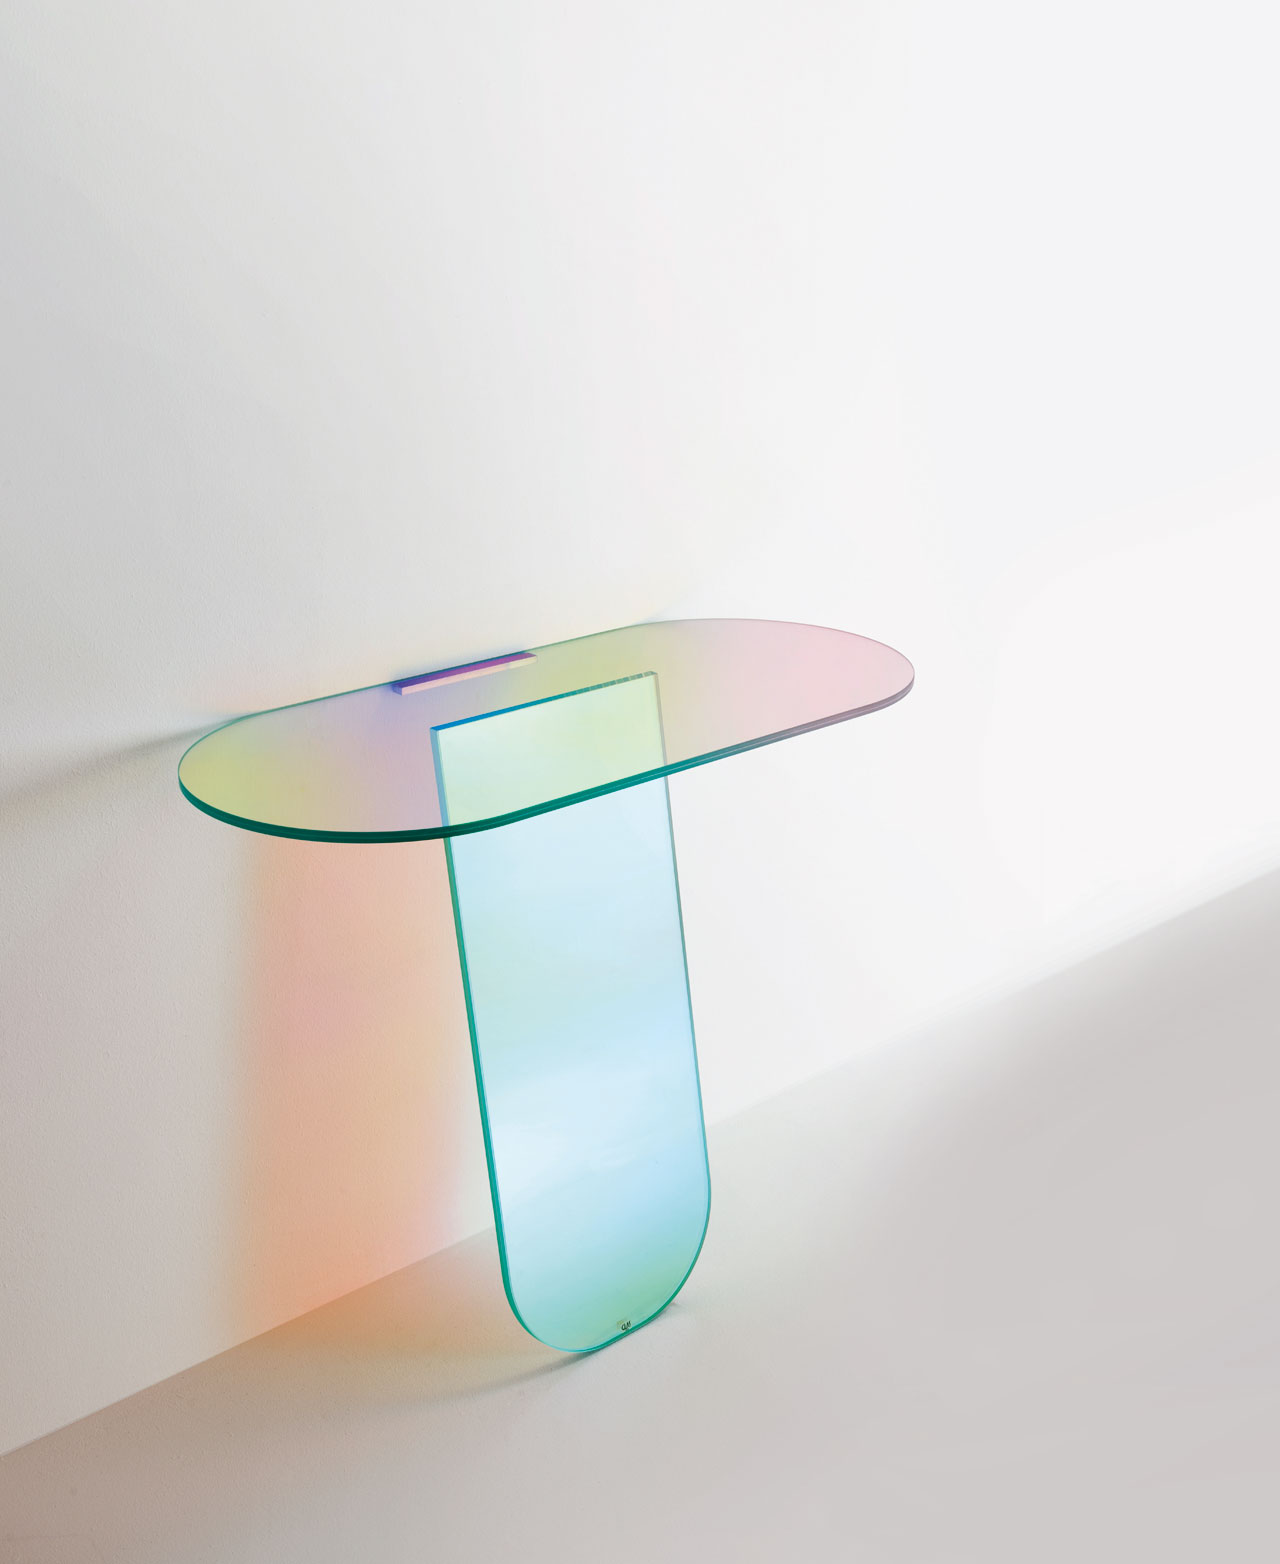 Console from the SHIMMER series by Patricia Urquiola for Glas Italia.